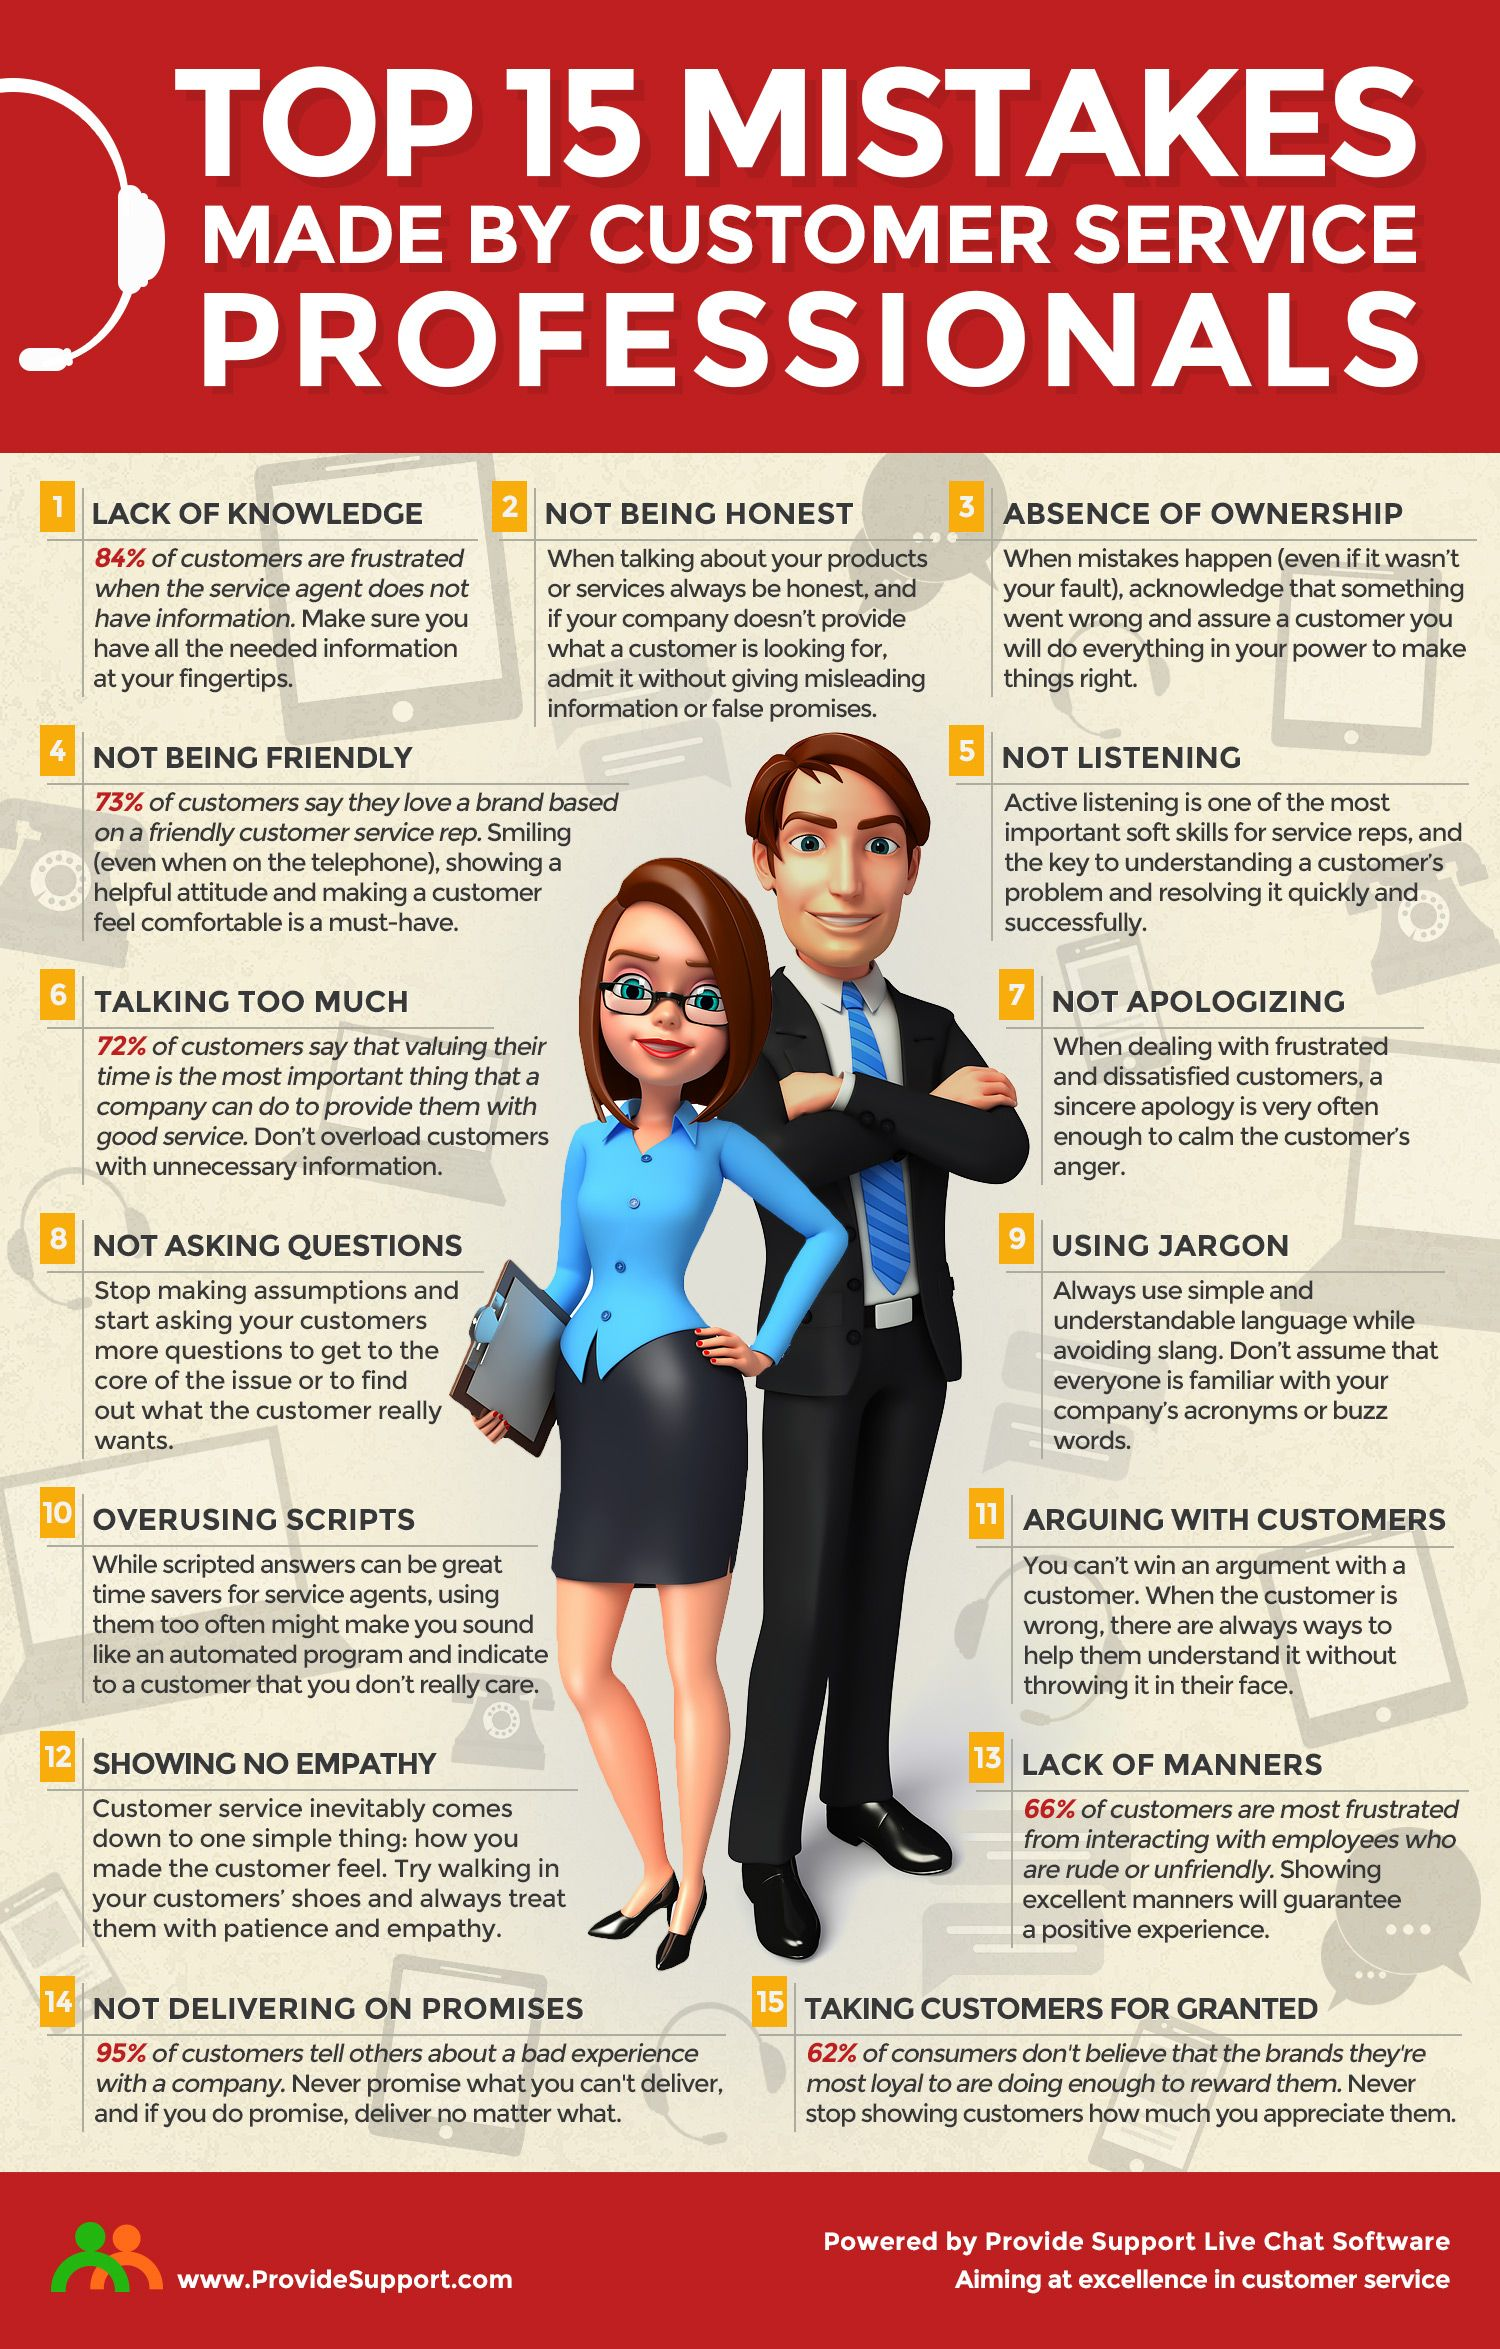 Top 15 Mistakes Made By Customer Service Professionals Customer Service  Training, Customer Service Week,